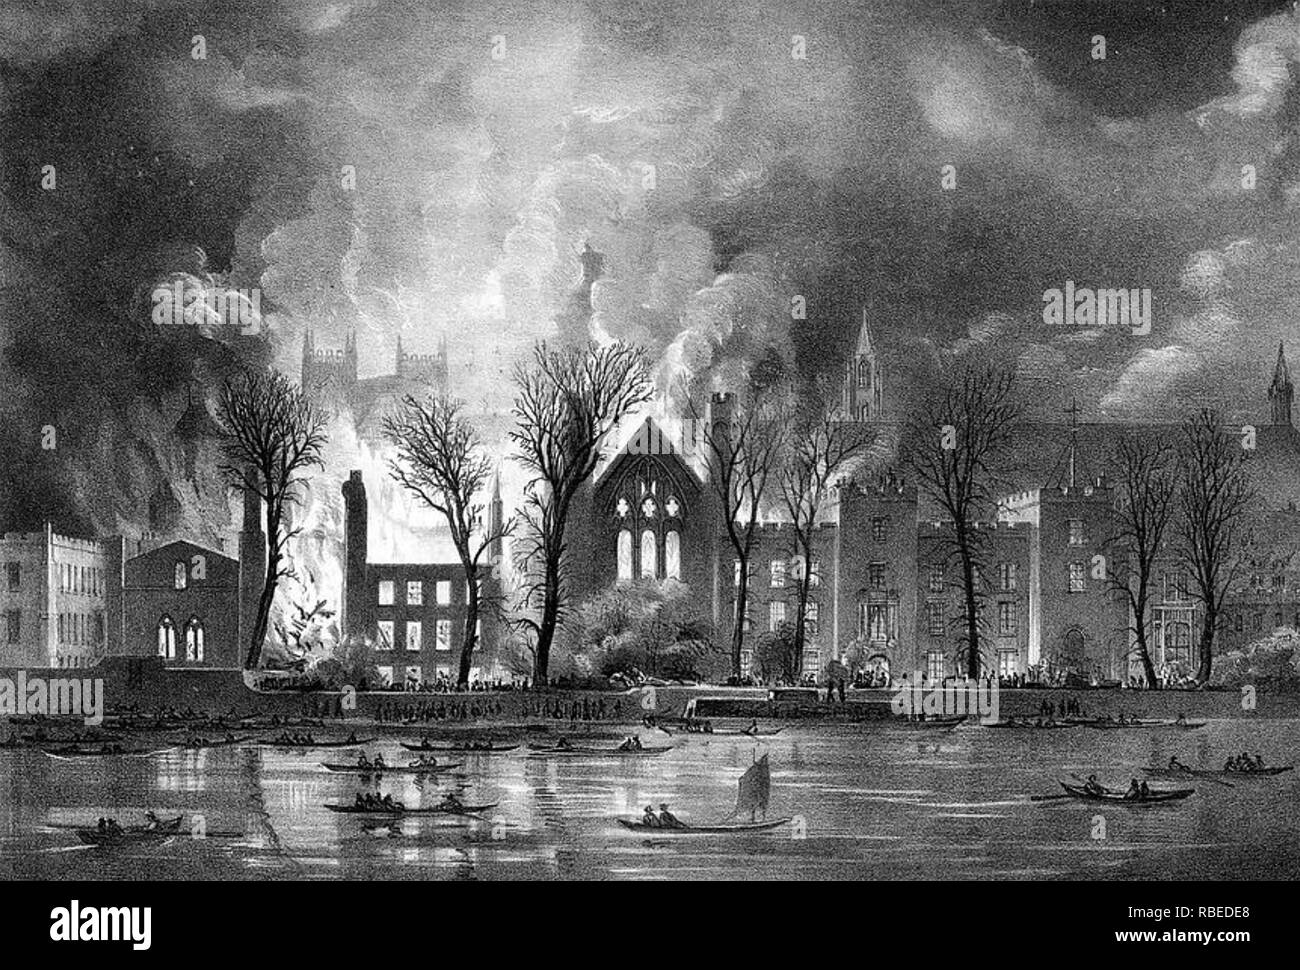 HOUSES OF PARLIAMENT on fire in October 1834 - Stock Image